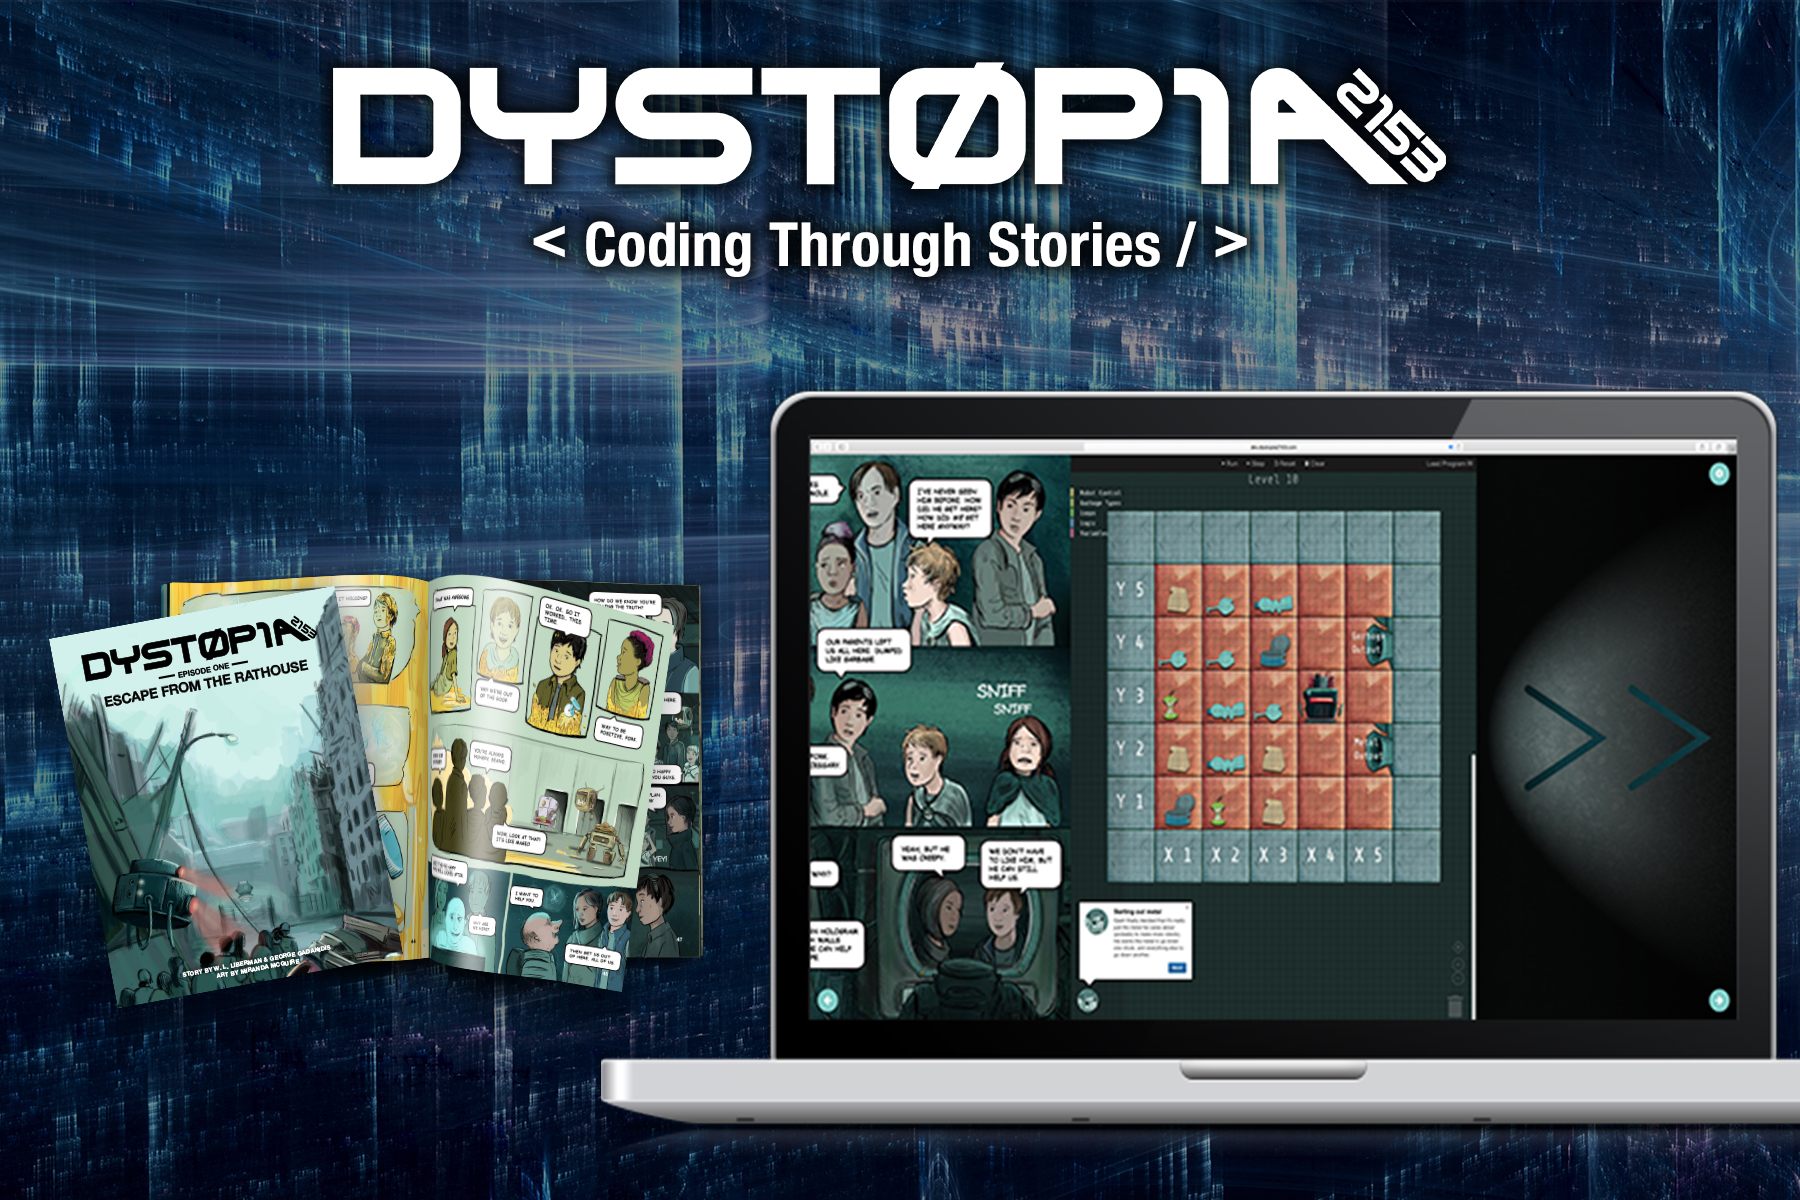 Dystopia - Coding Through Stories